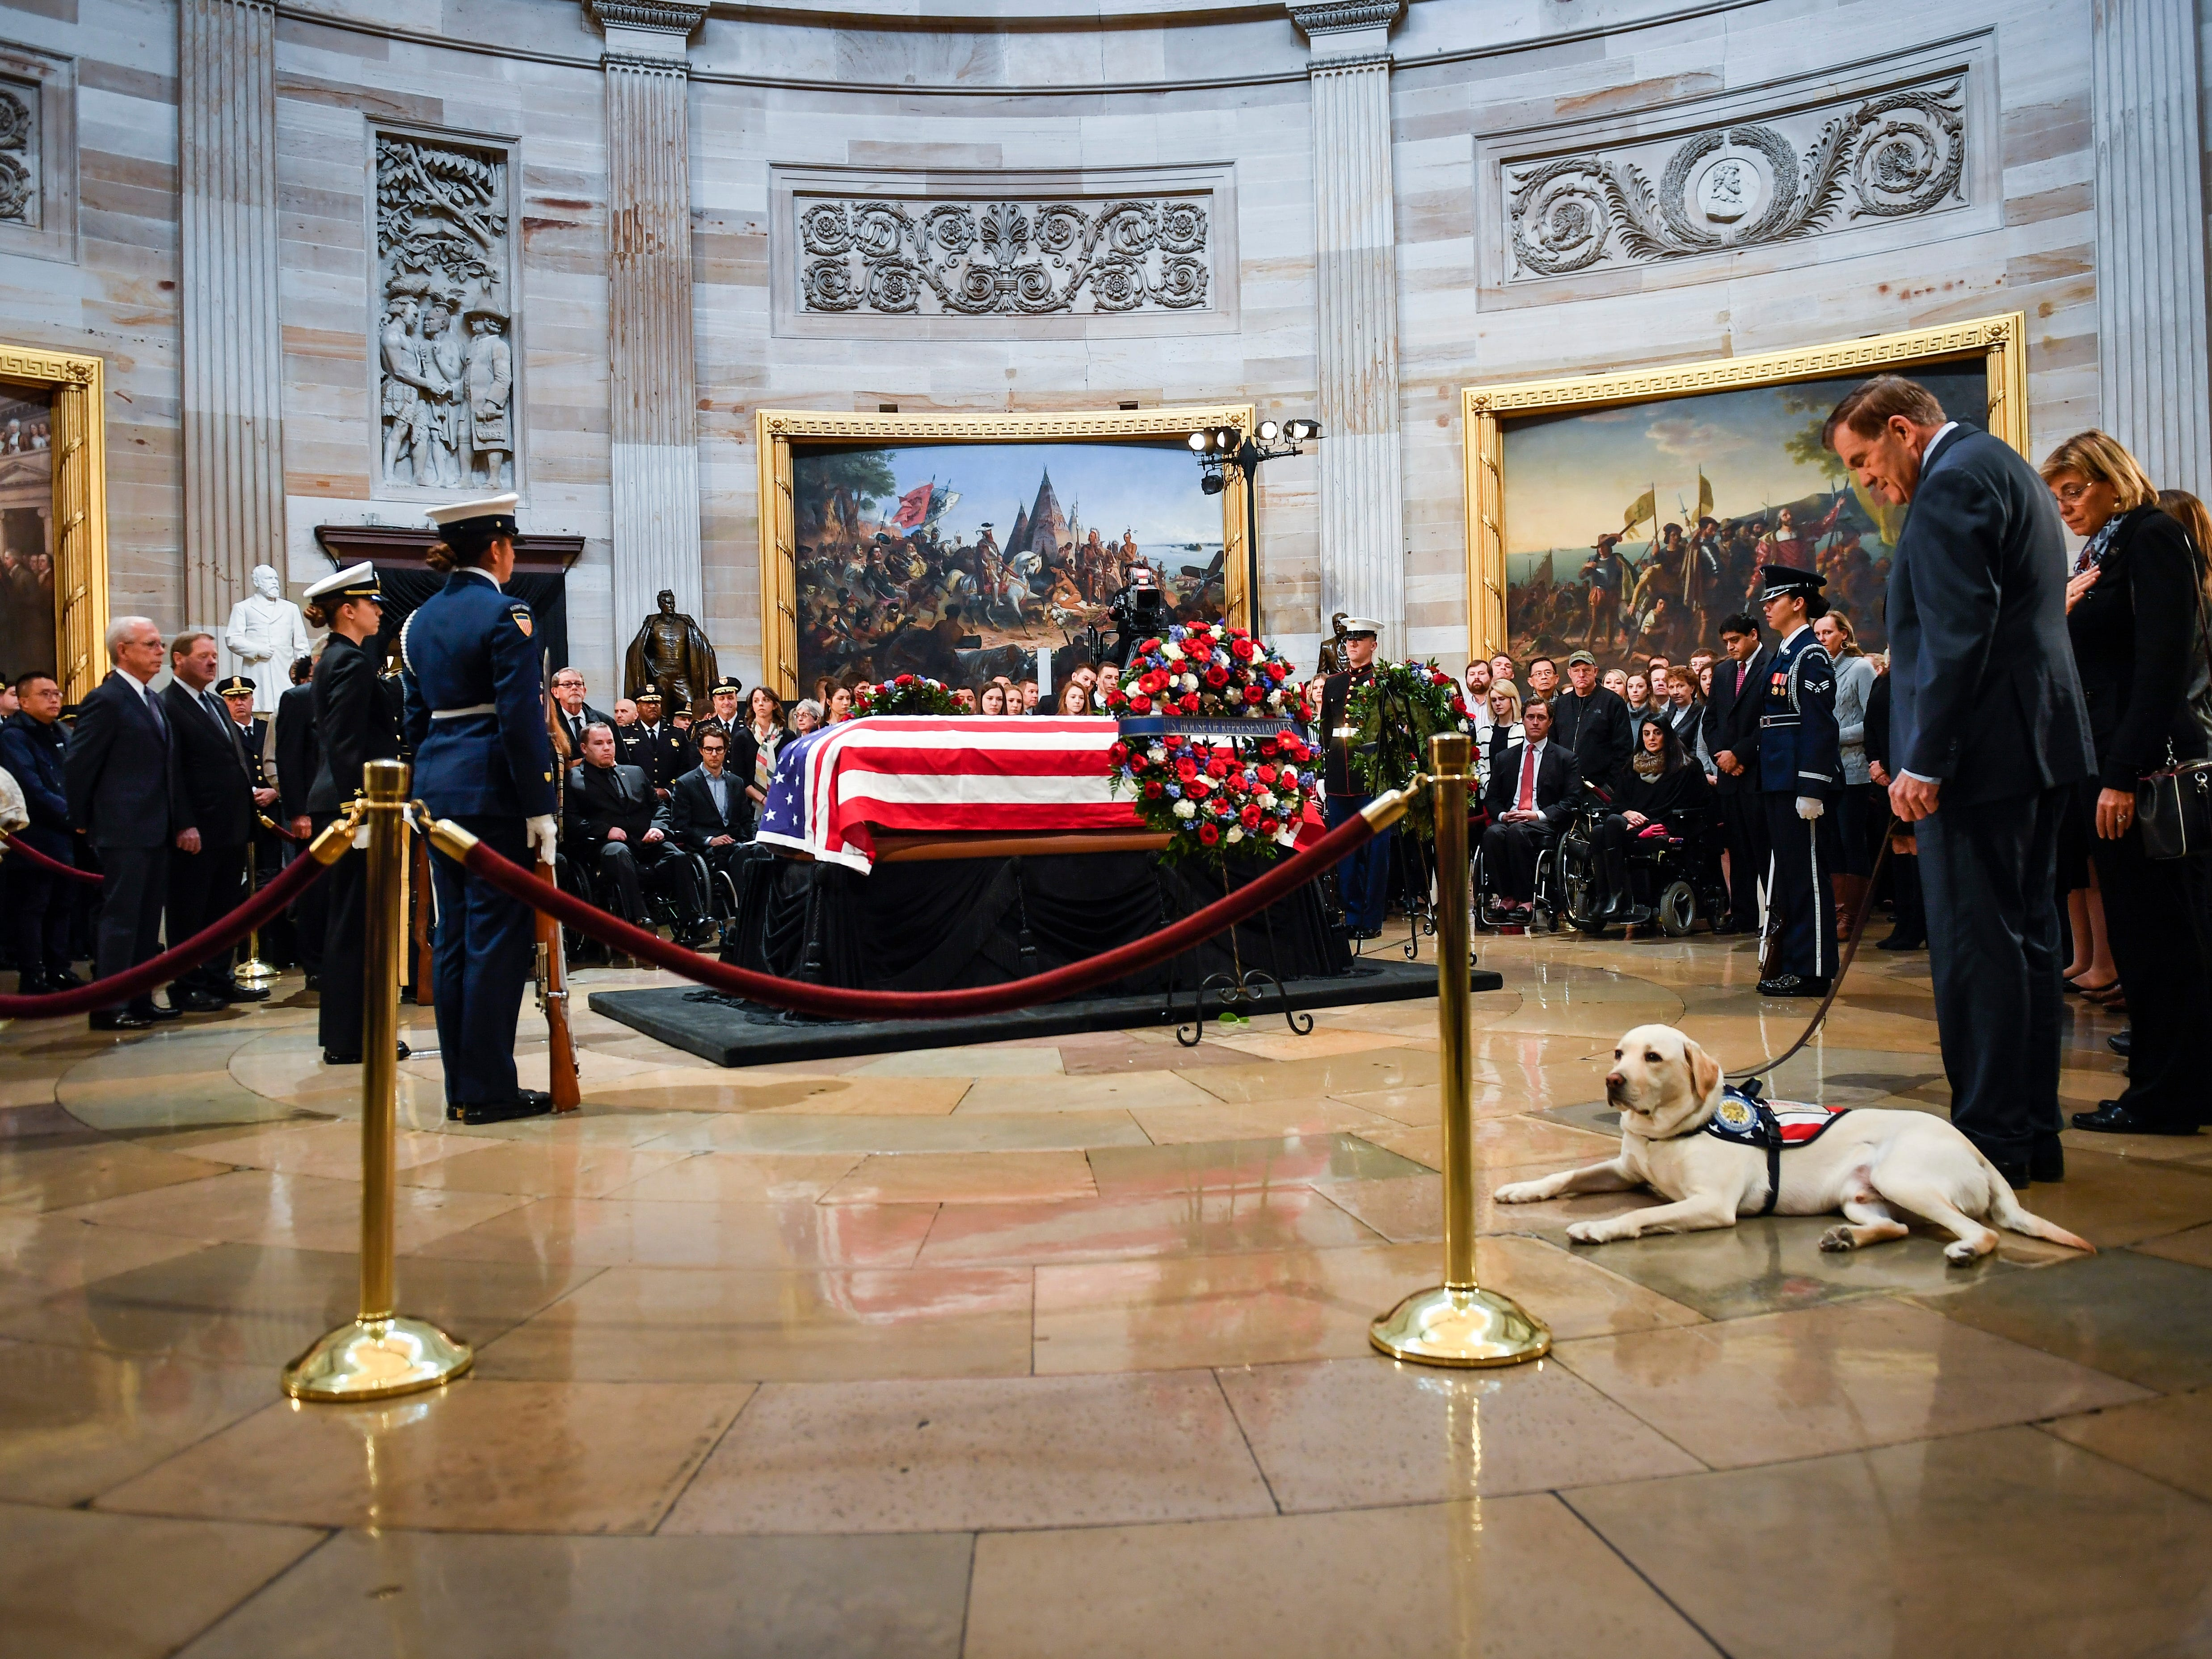 12/4/18 11:09:41 AM -- Washington, DC, U.S.A  -- George H.W. Bush's service dog Sully with former United States Secretary of Homeland Security Tom Ridge at the U.S. Capitol to honor late president. Sully, a service dog trained by America's VetDogs, will join Walter Reed National Military Medical Center's Facility Dog Program after the holidays. President George H.W. Bush lies in state at the U.S. Capitol Rotunda. --    Photo by Jack Gruber, USA TODAY staff ORG XMIT:  JG 137685 Arrival and Fune 12/4 (Via OlyDrop)